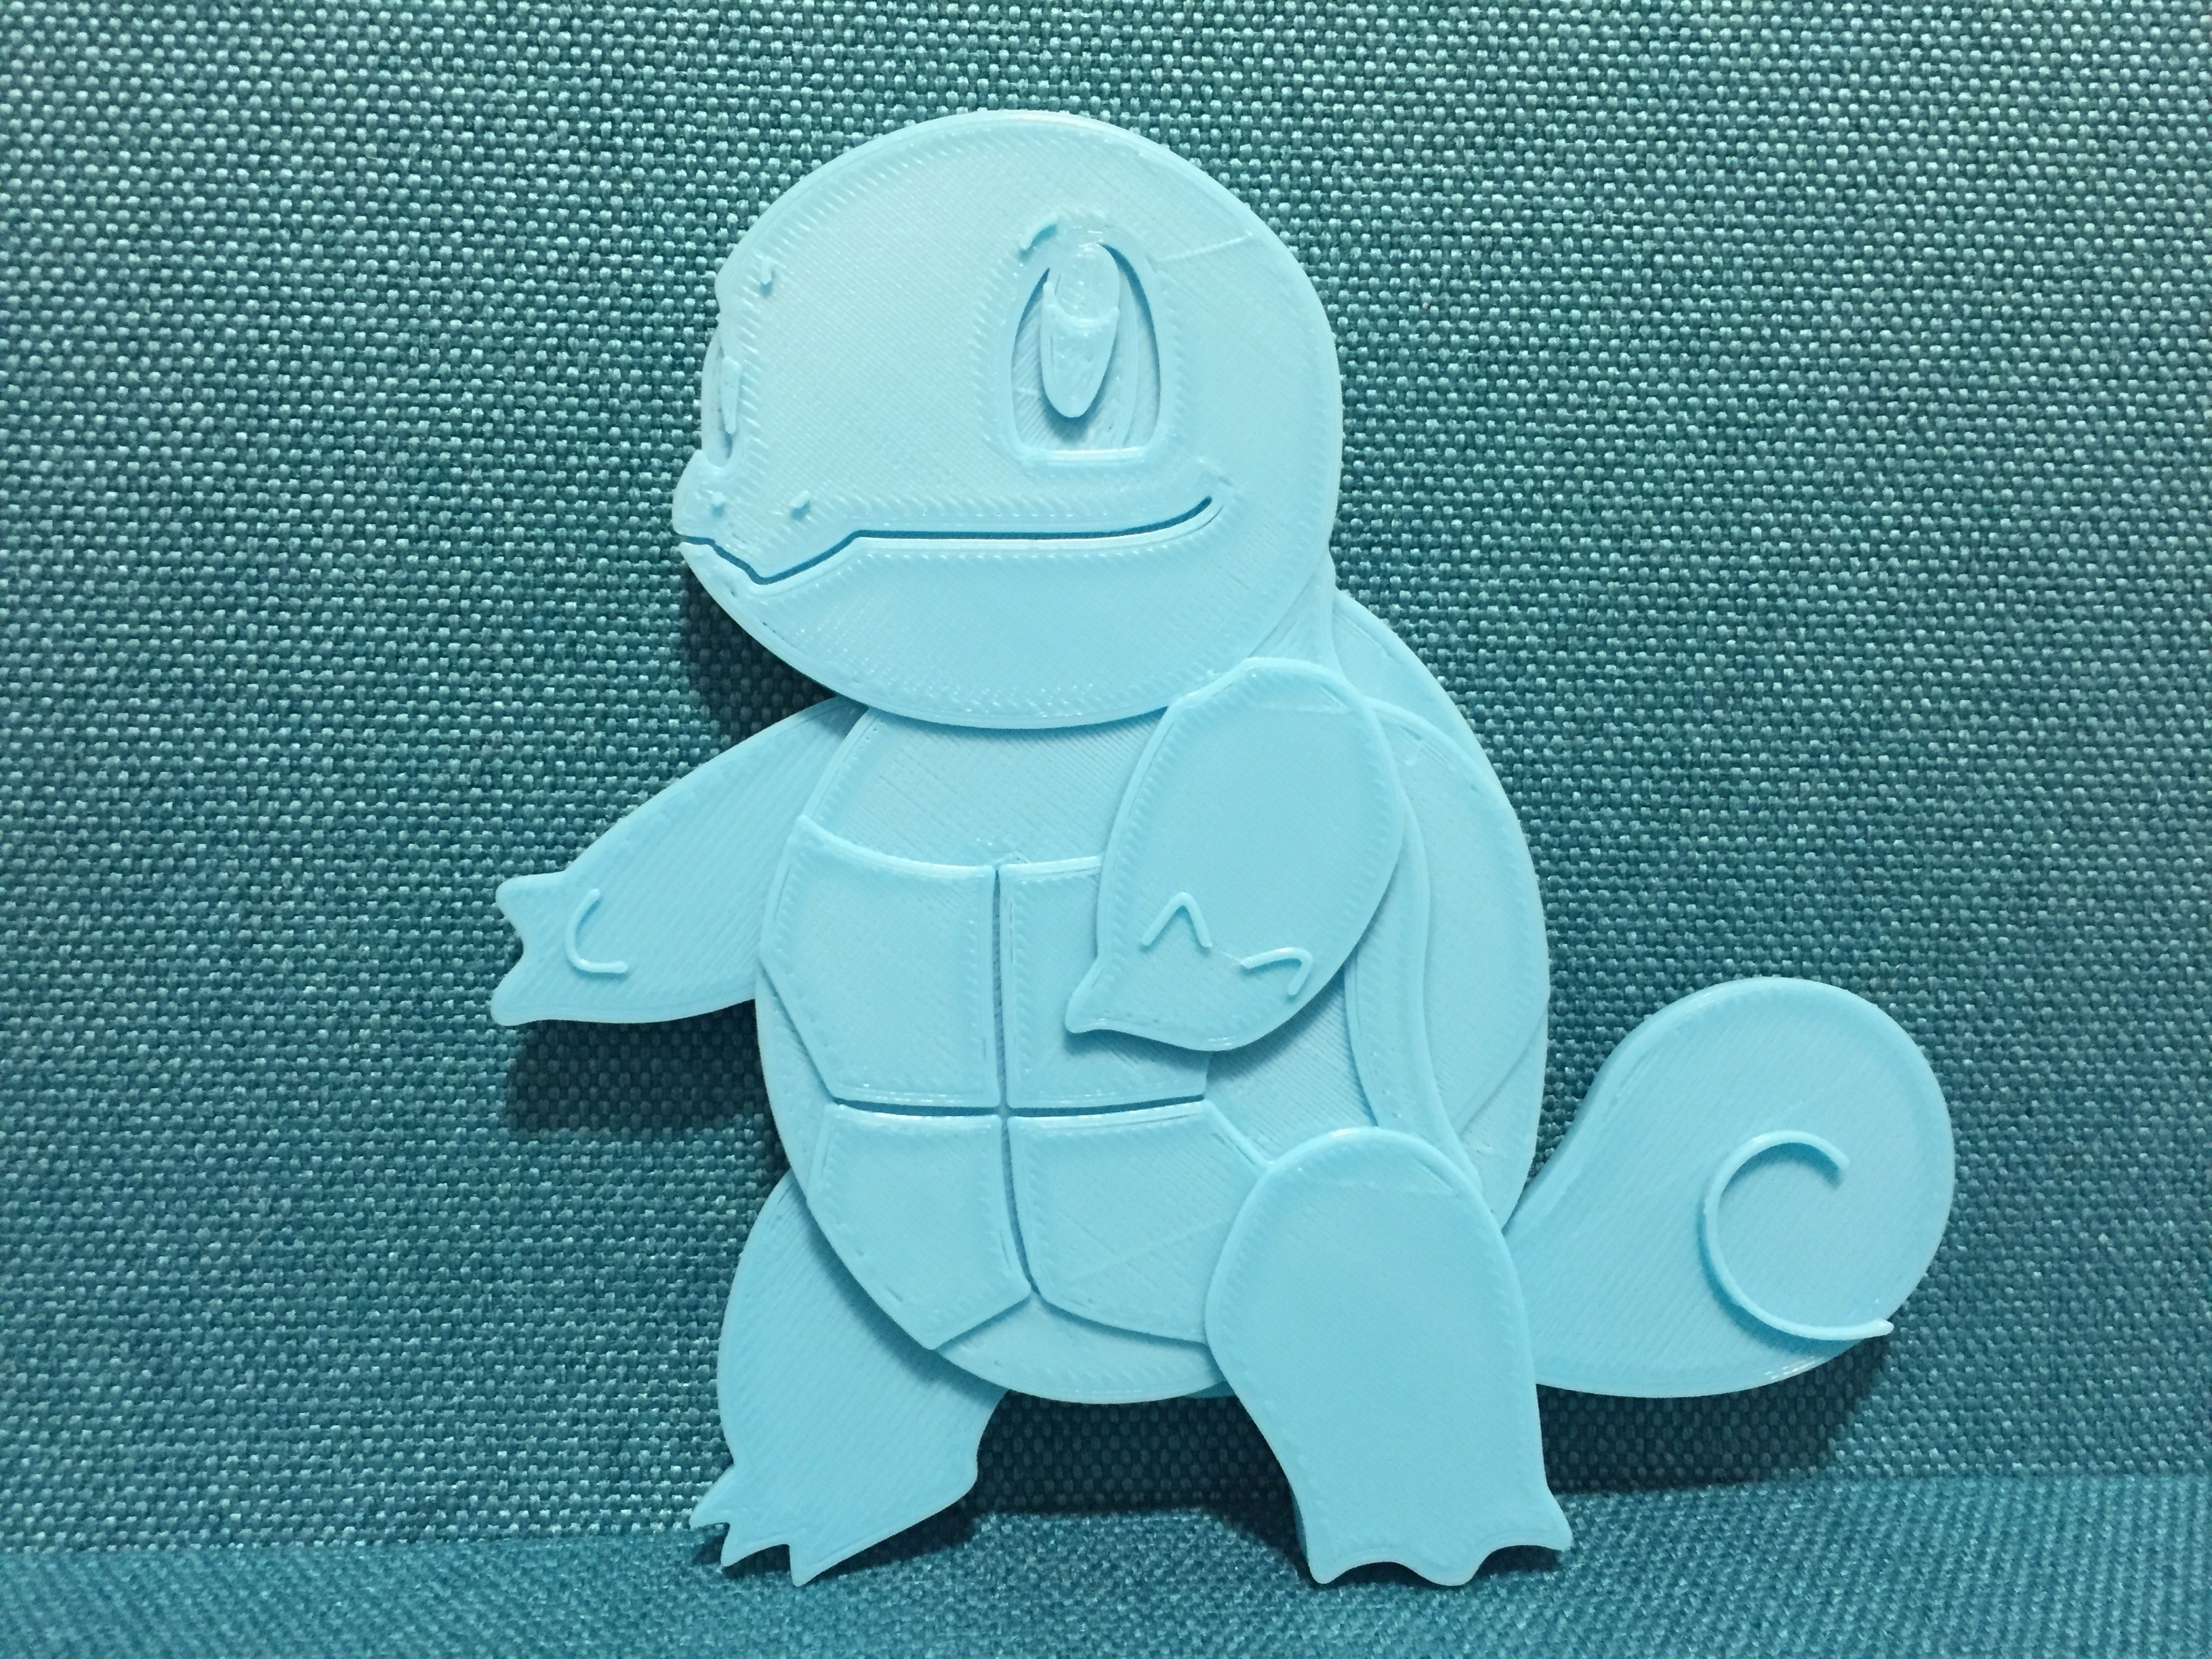 IMG_6955.jpg Download free STL file Squirtle • 3D printing object, upperpeninsulaplastics